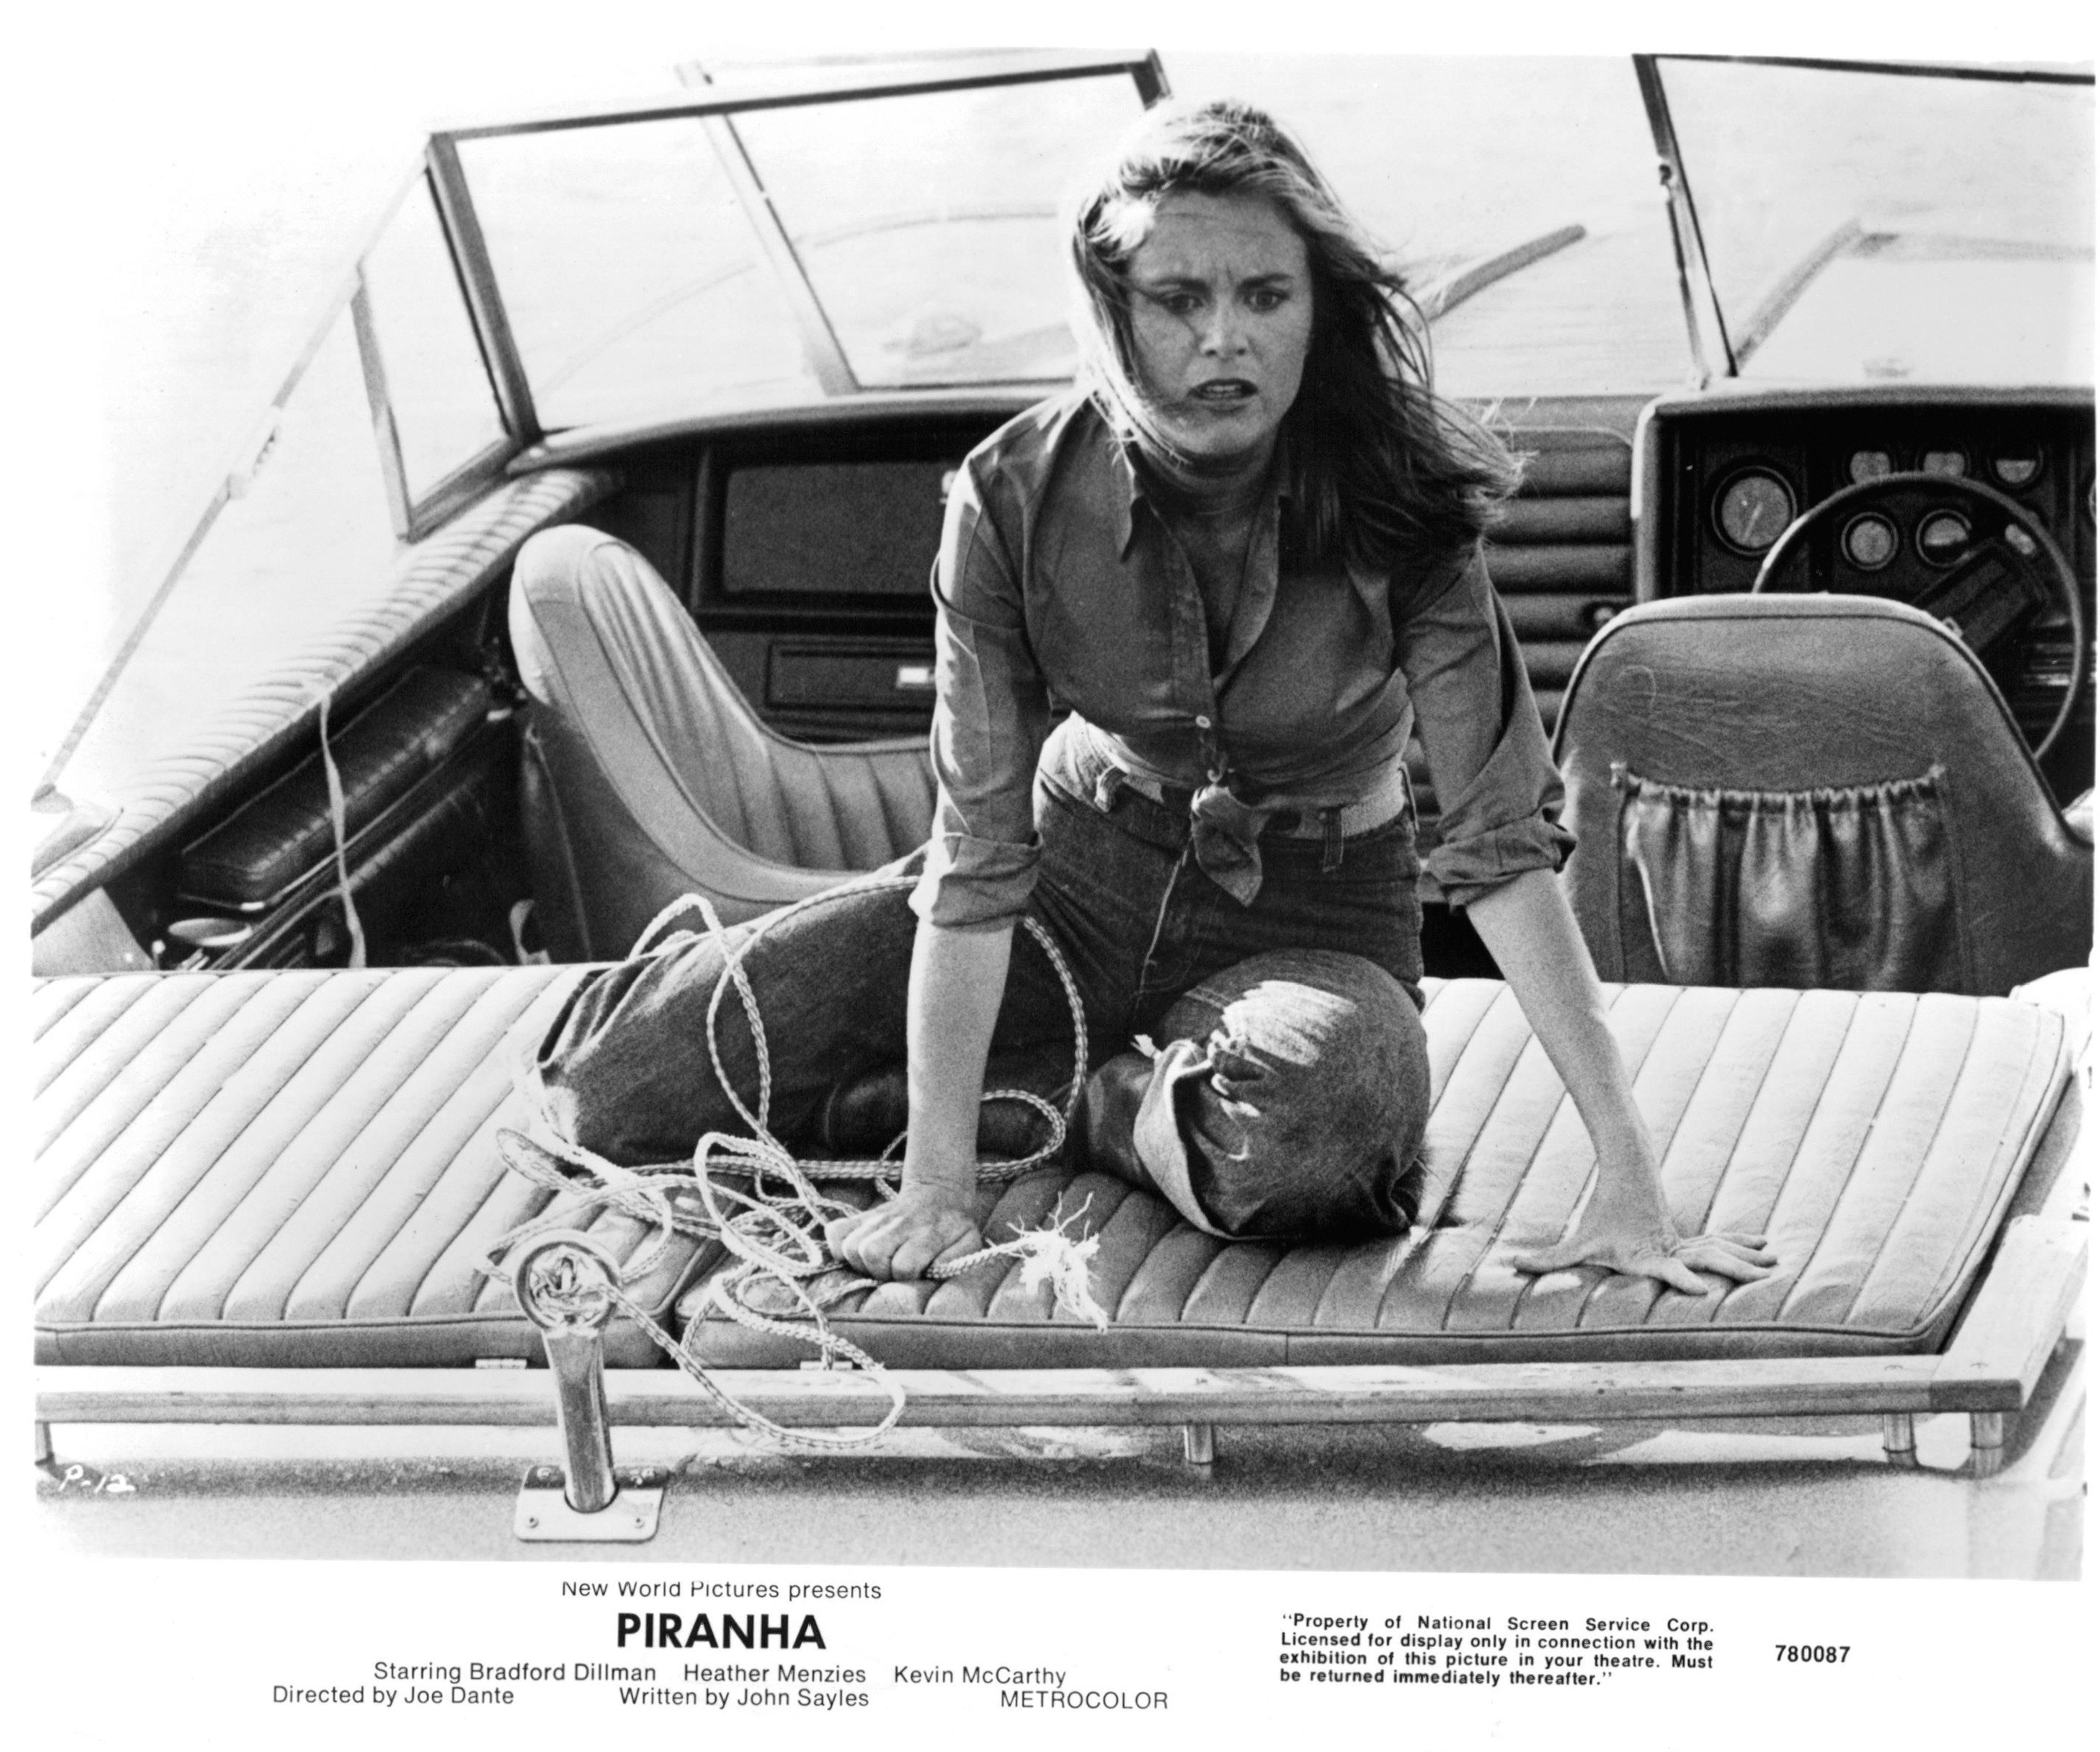 Heather Menzies-Urich sits on the back of a boat in a scene from the film 'Piranha', 1978. (Photo by United Artists/Getty Images)